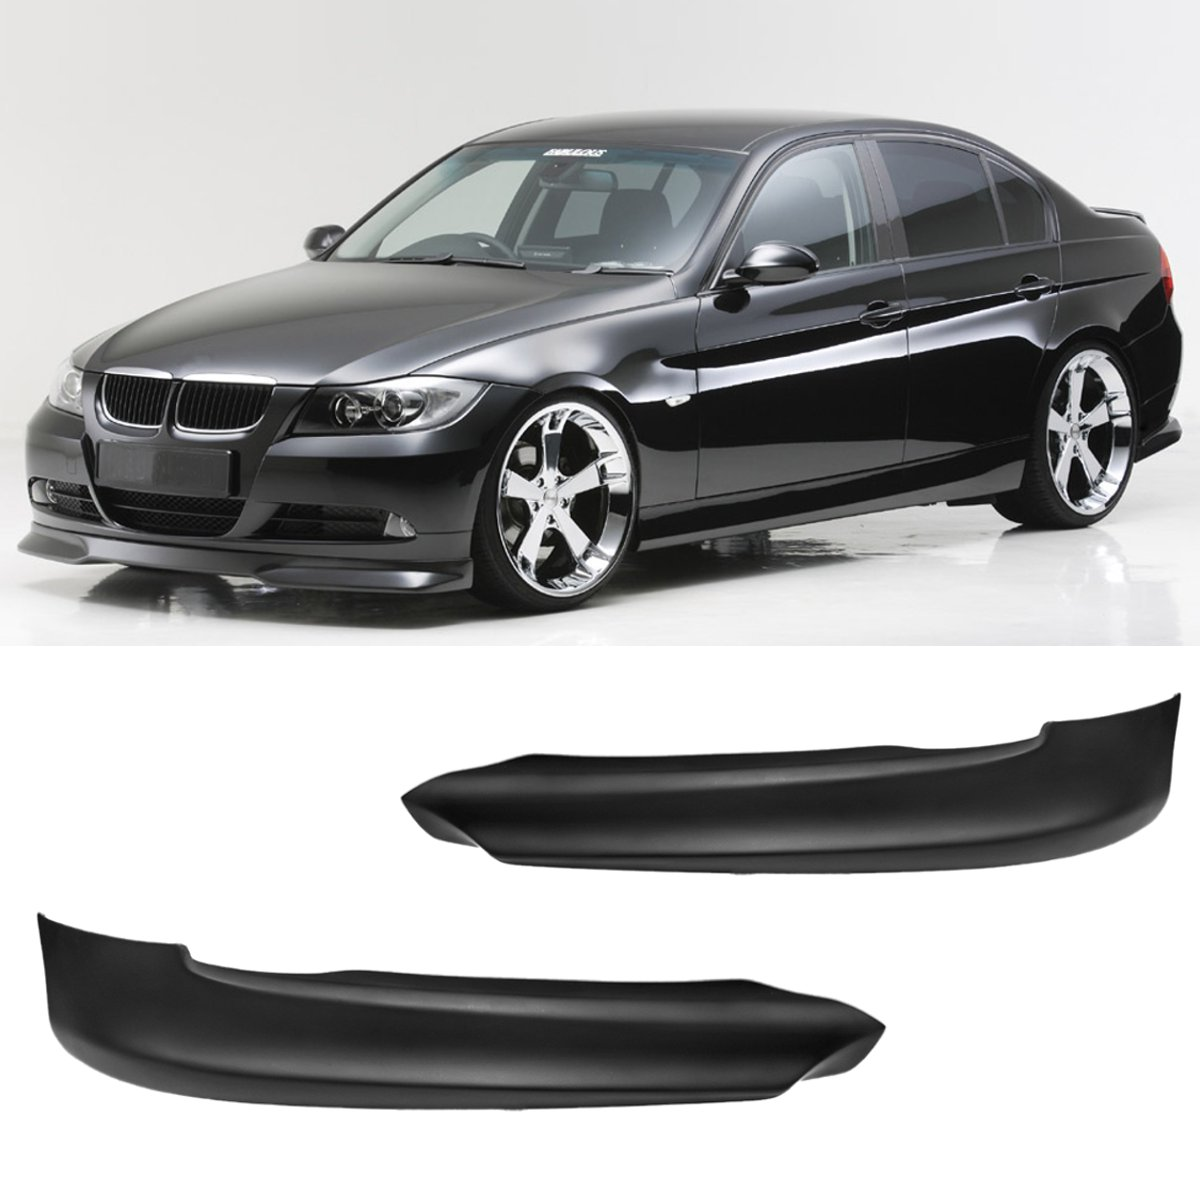 A Pair Front Bumper Lip Spoiler Splitter High quality For BMW E90 325i 335i 328i 330i 2005-2008 зарядное устройство usams us cc036 1xusb black